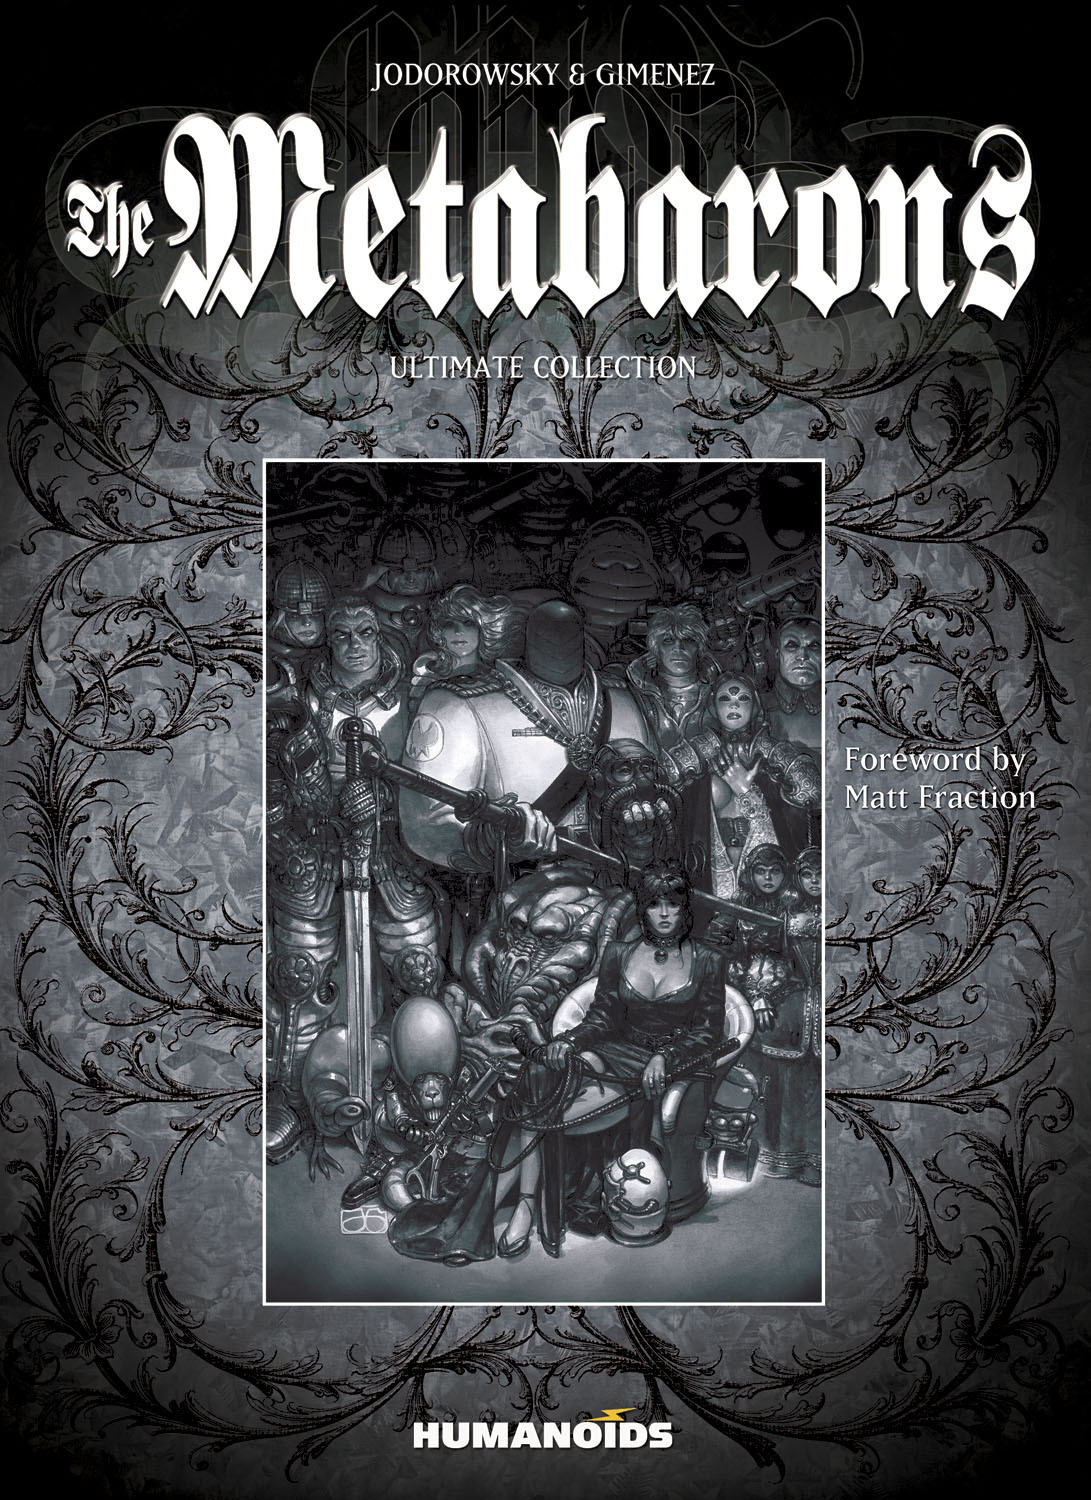 The Metabarons - Hardcover Trade : Ultimate Collection